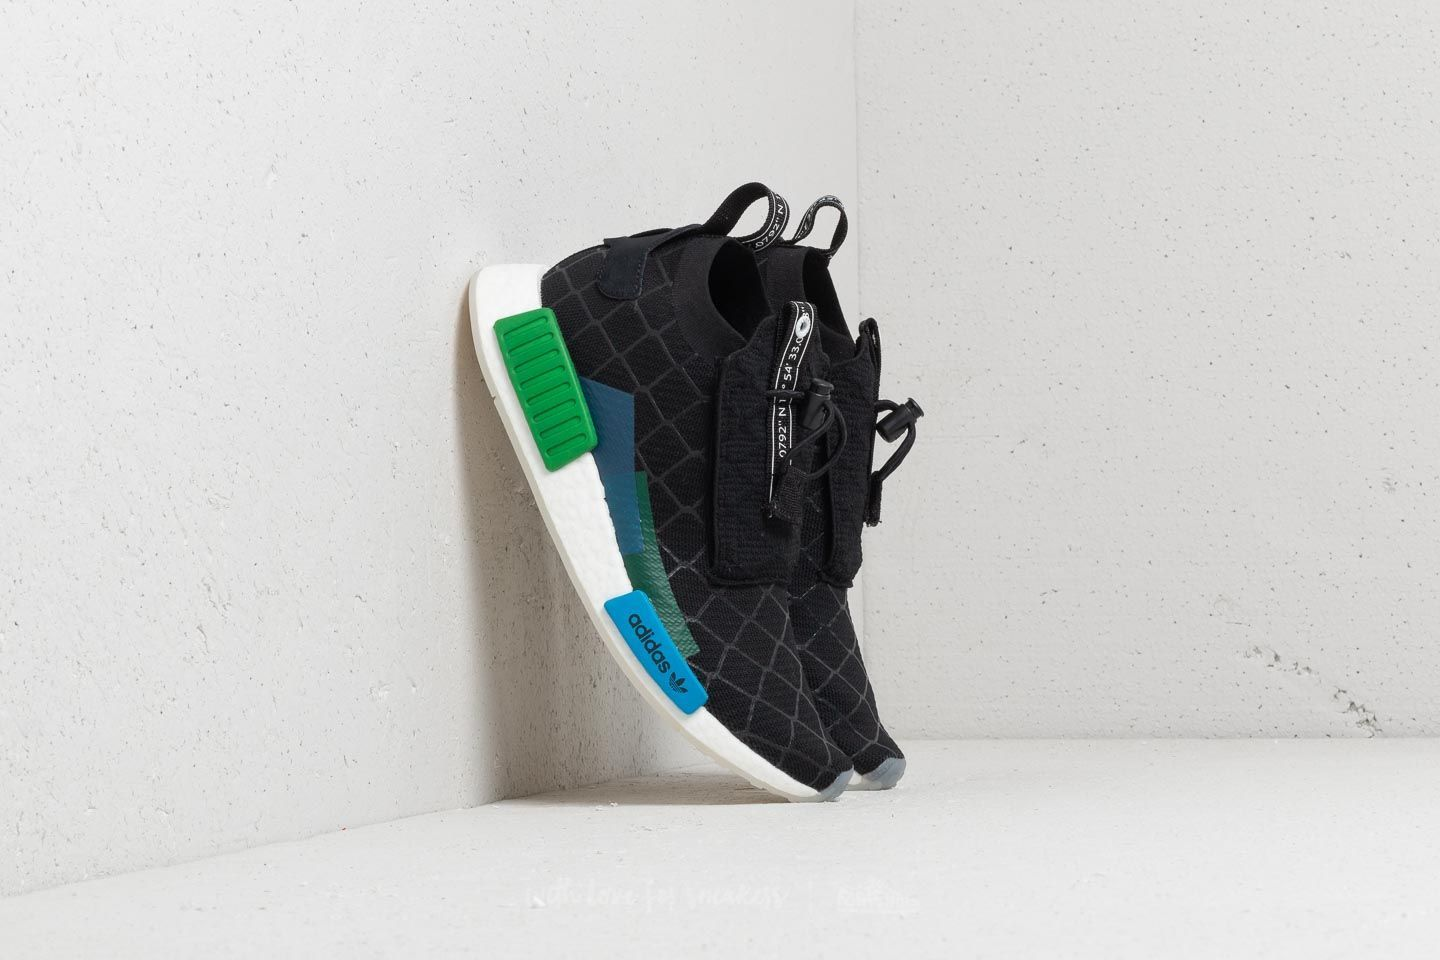 Pin by Ryan Bolden on Adidas Shoes in 2019 | Adidas, Adidas